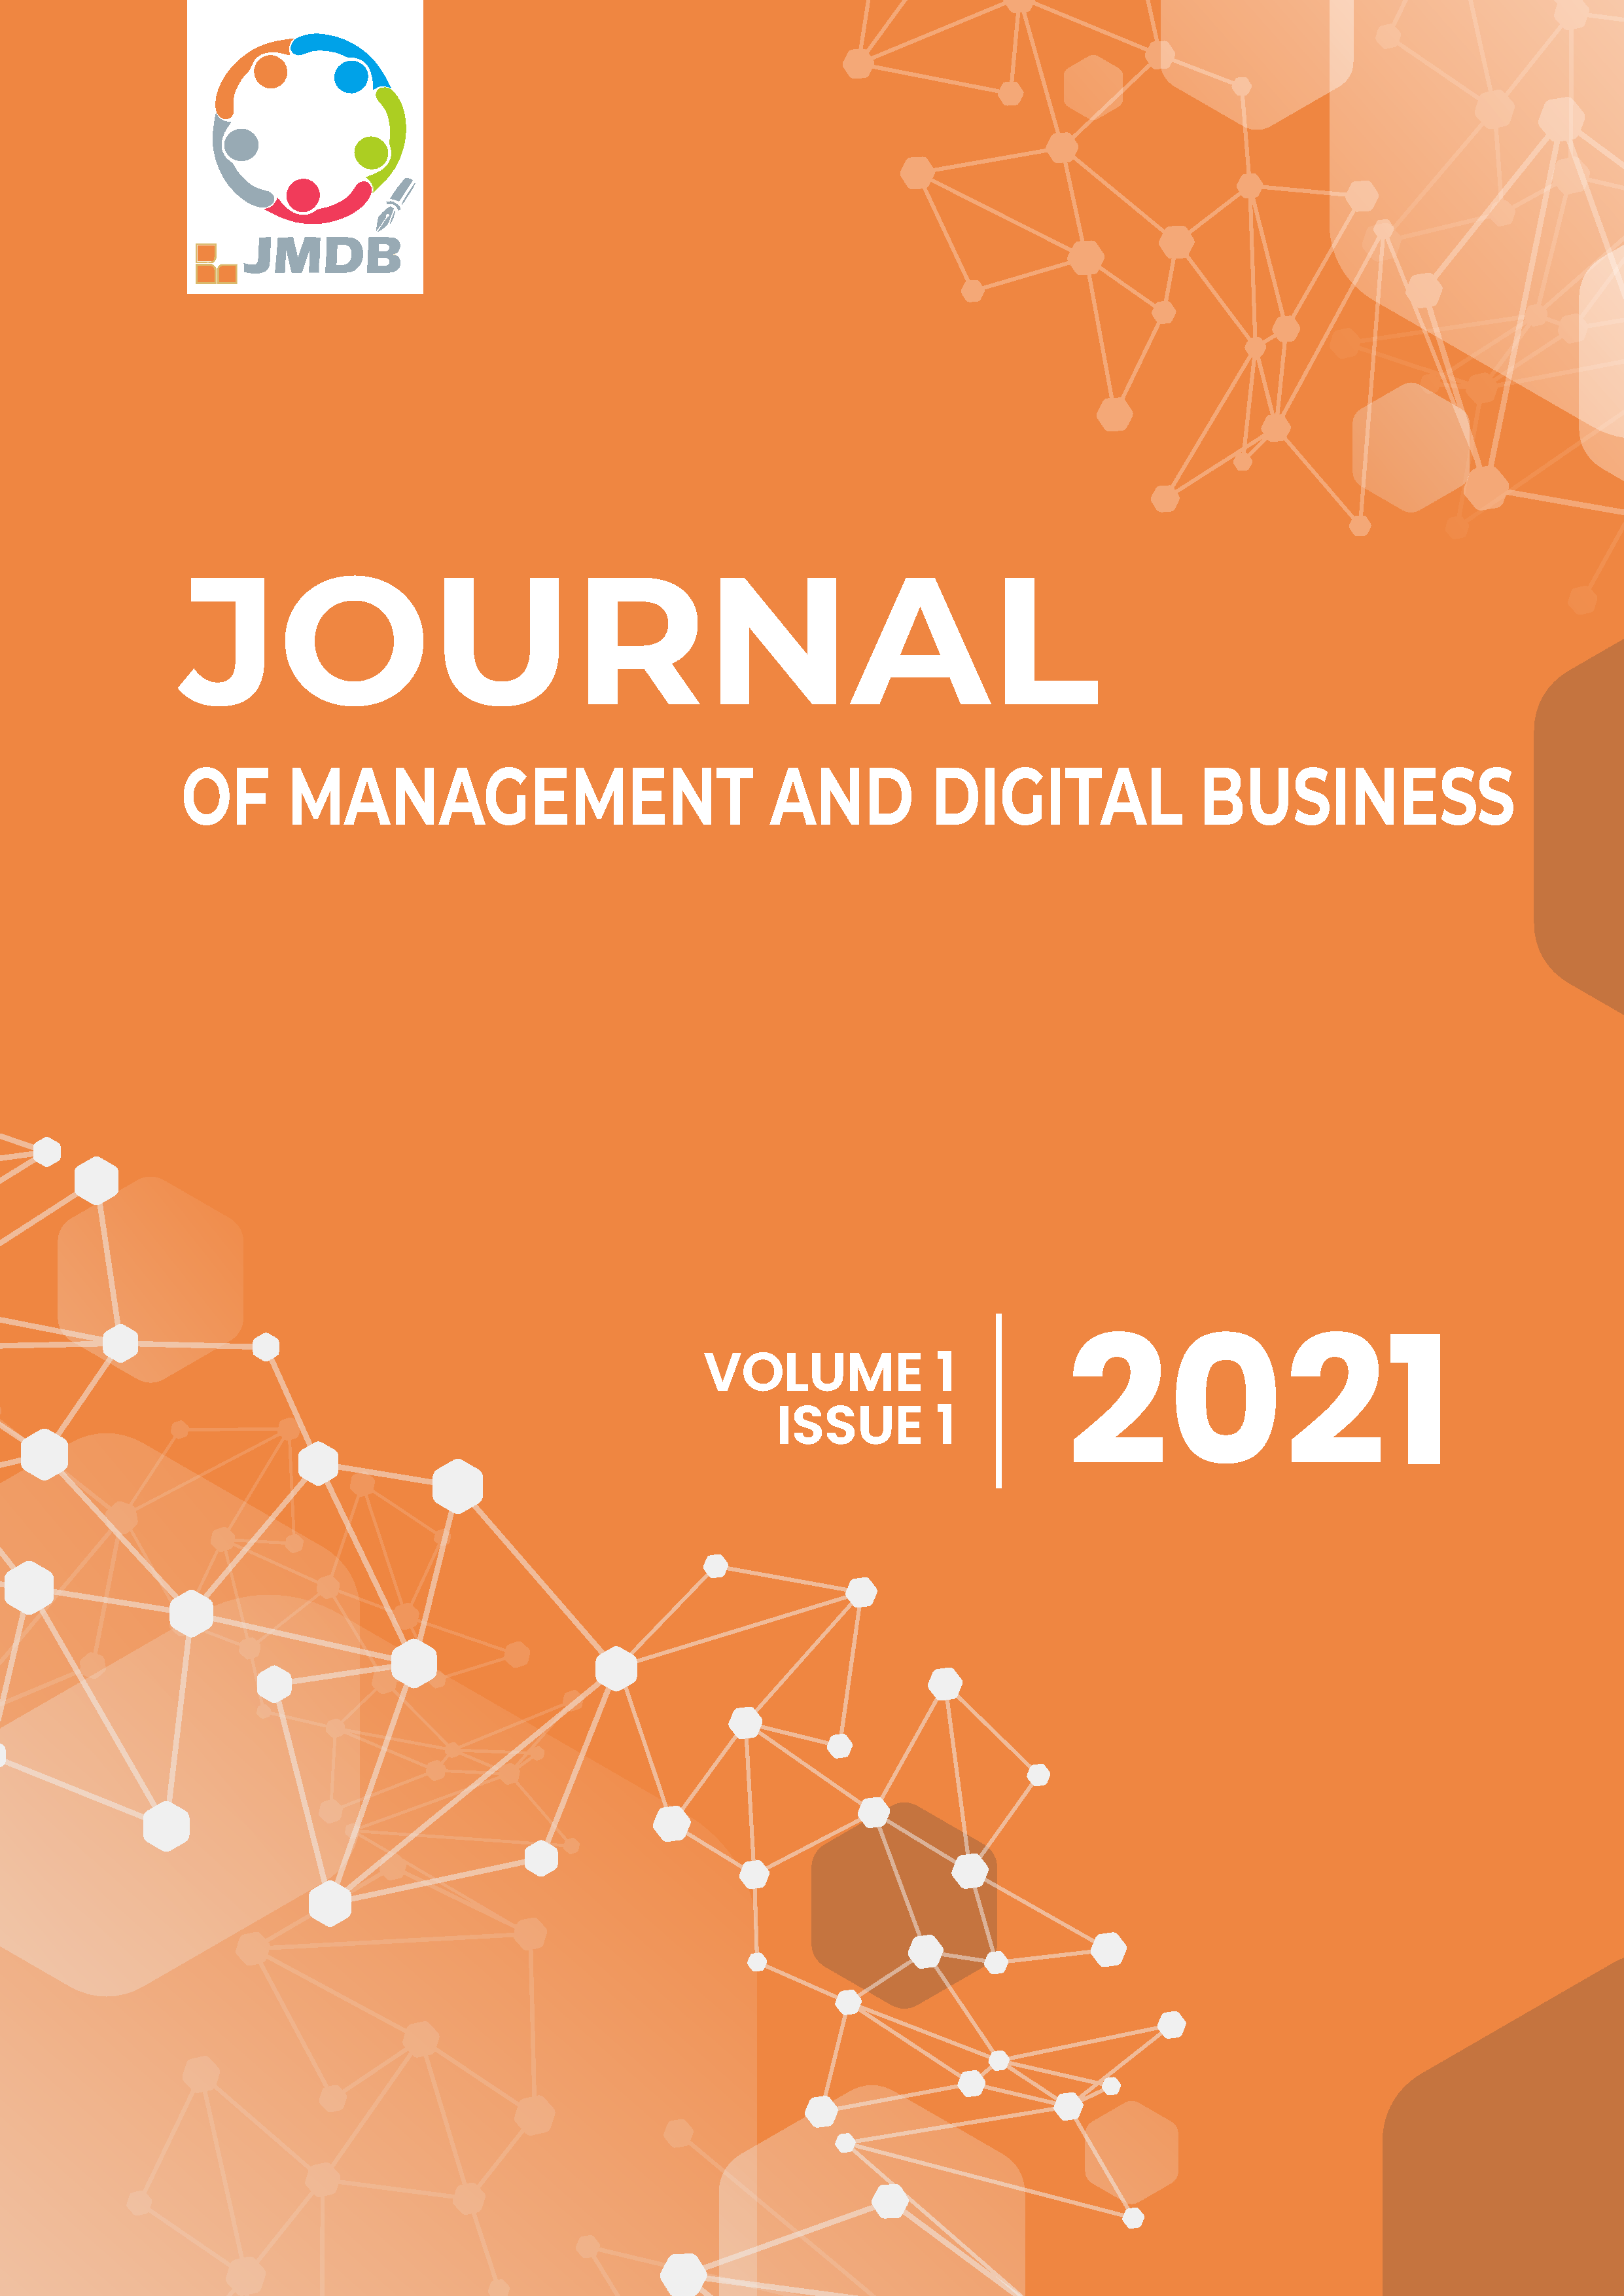 View Vol. 1 No. 1 (2021): Journal of Management and Digital Business